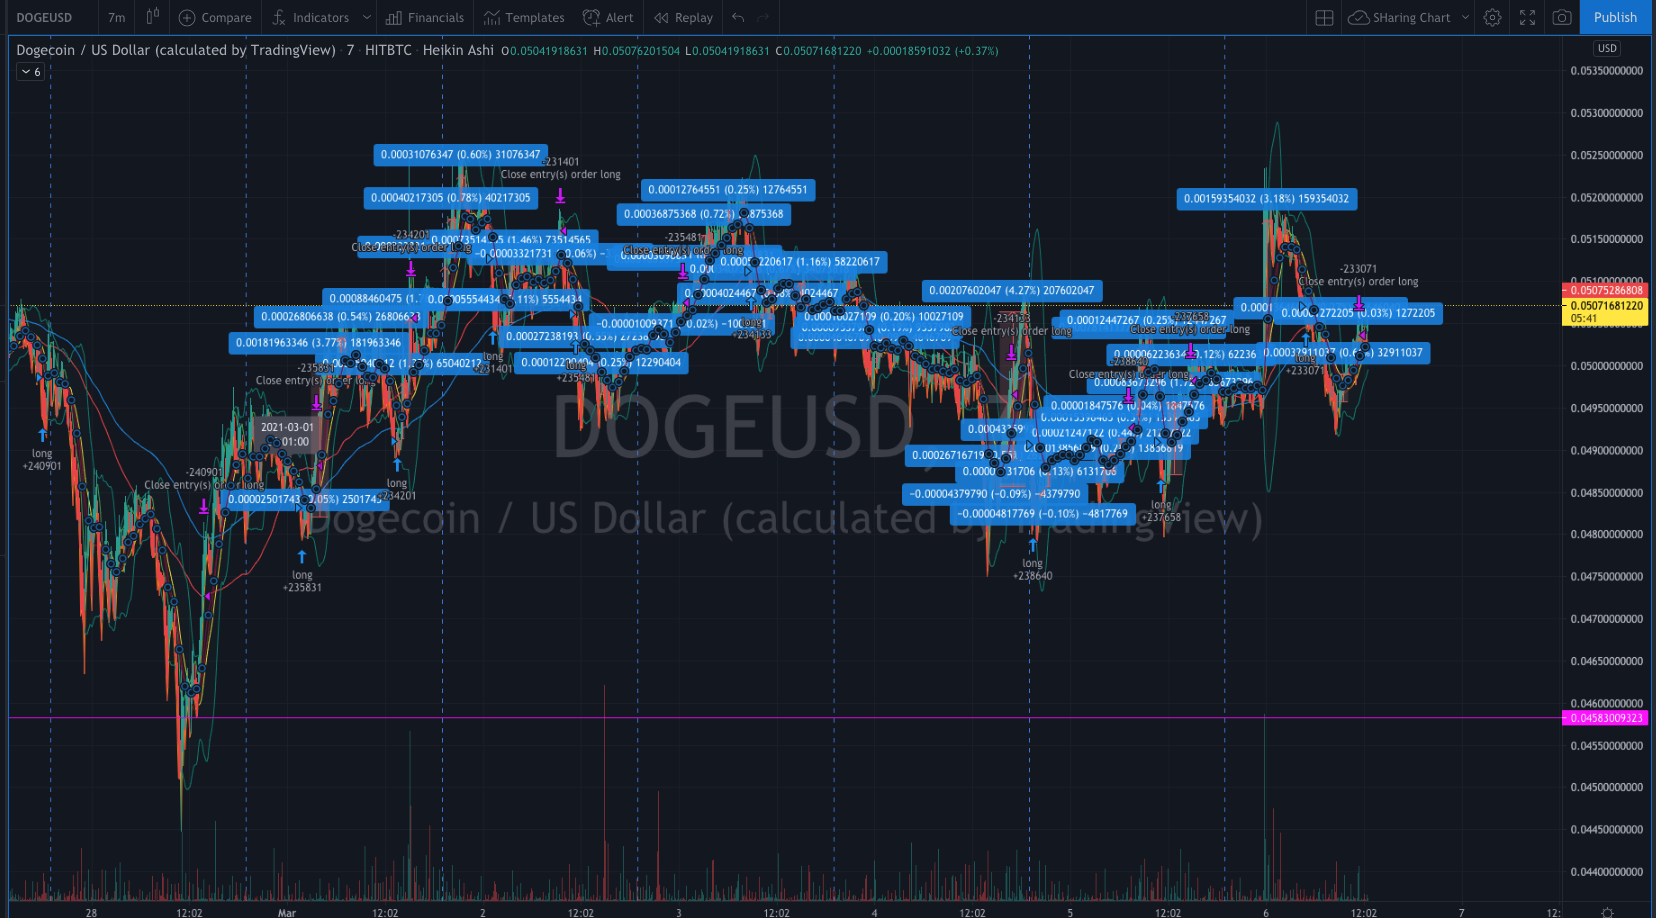 cryptocurrency dogecoin 29% profit in 42 trades